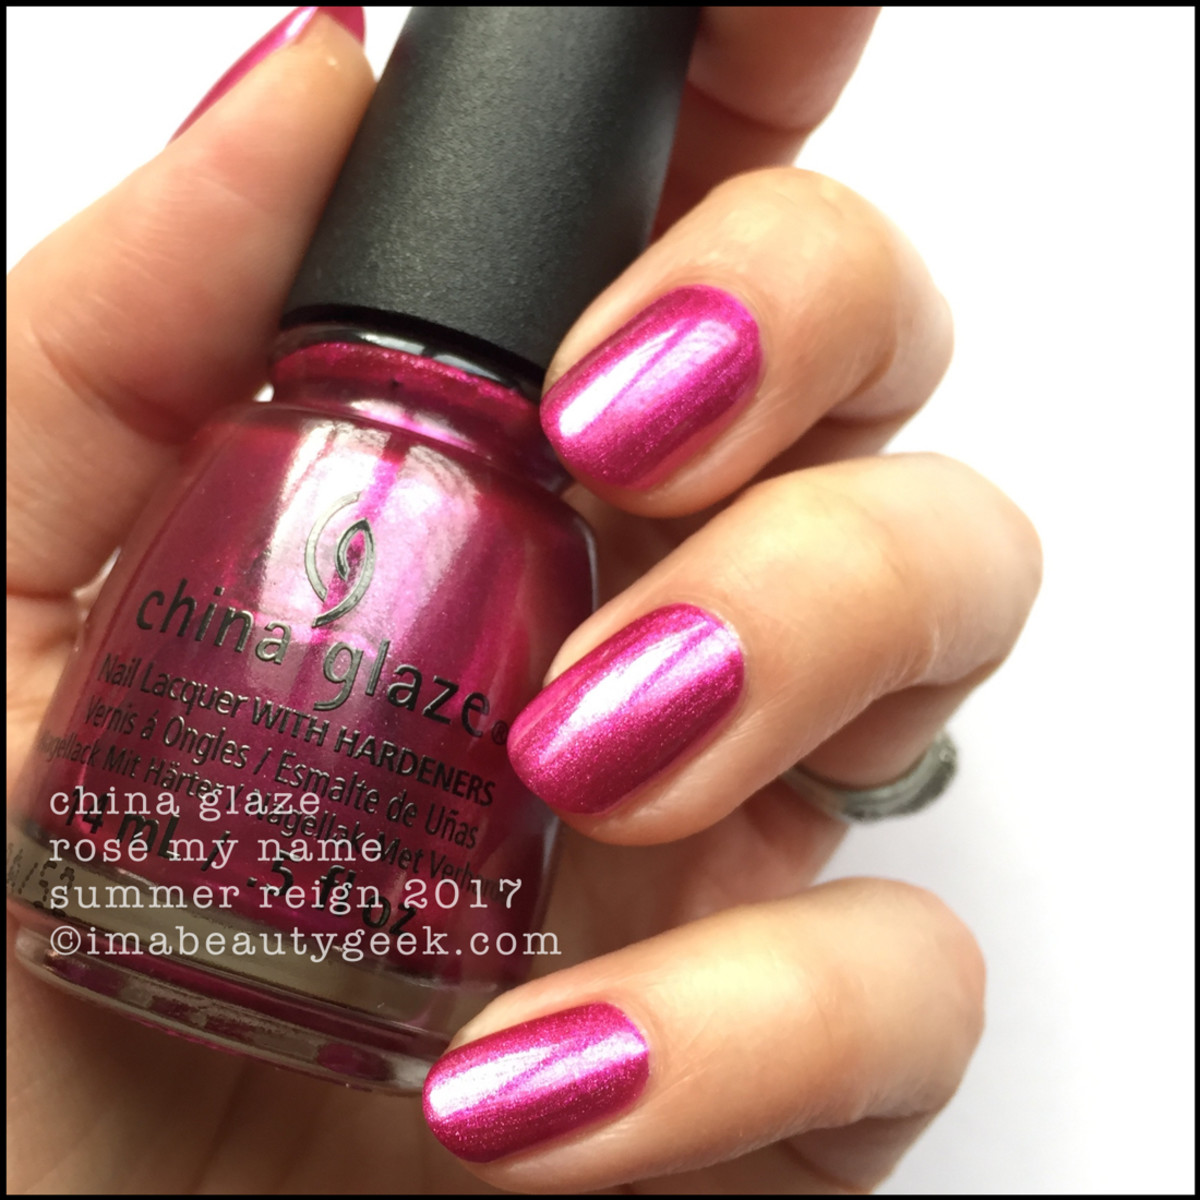 China Glaze Rose My Name_Summer Reign 2017 Collection